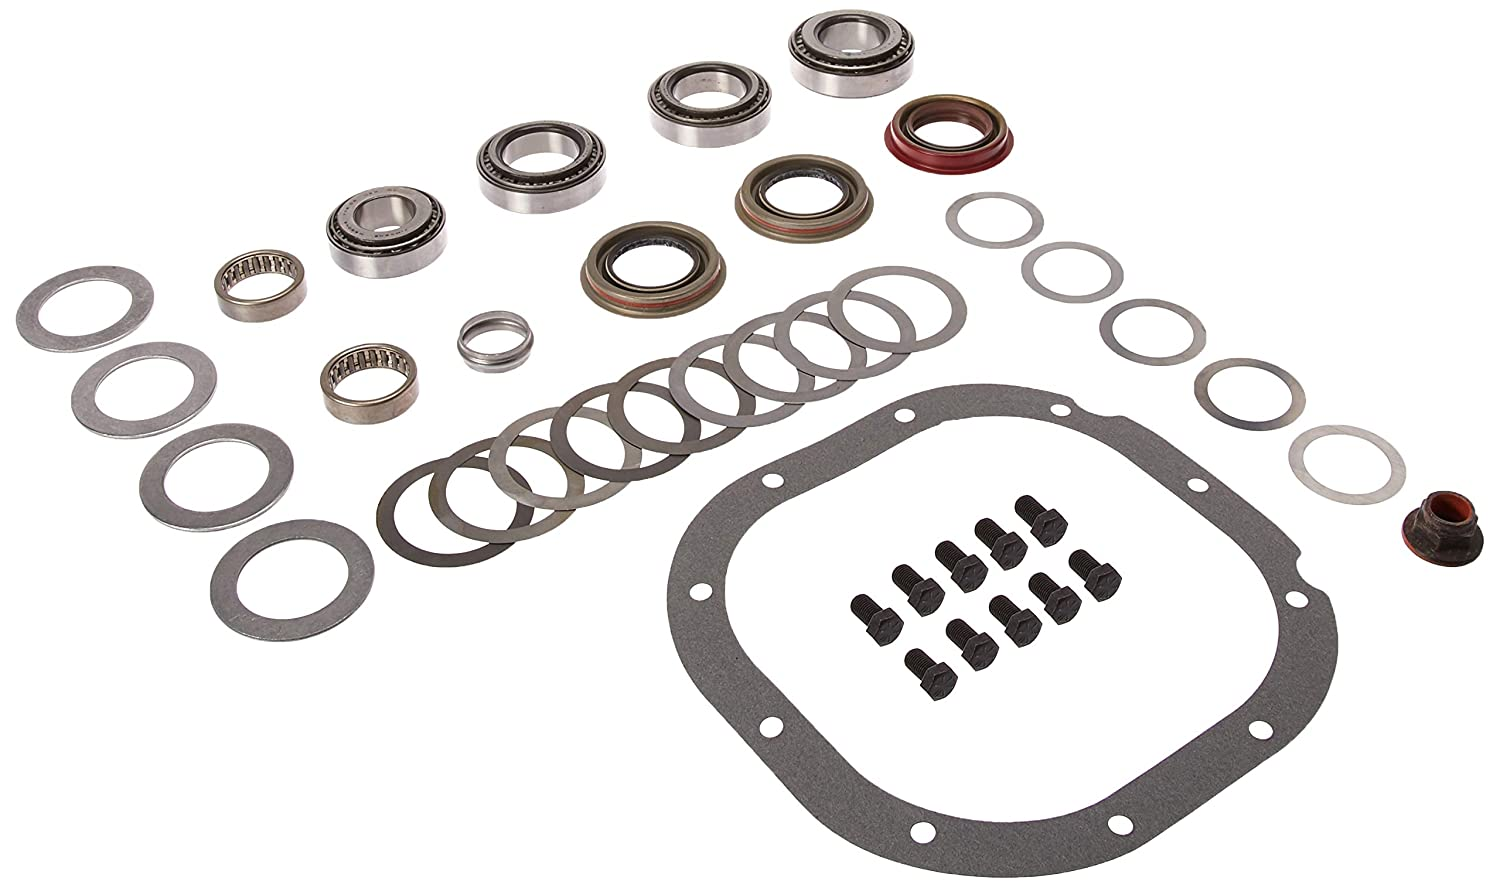 Motive Gear R8.8RIRSMKT Master Bearing Kit with Timken Bearings Ford 8.8 IRS 02-ON